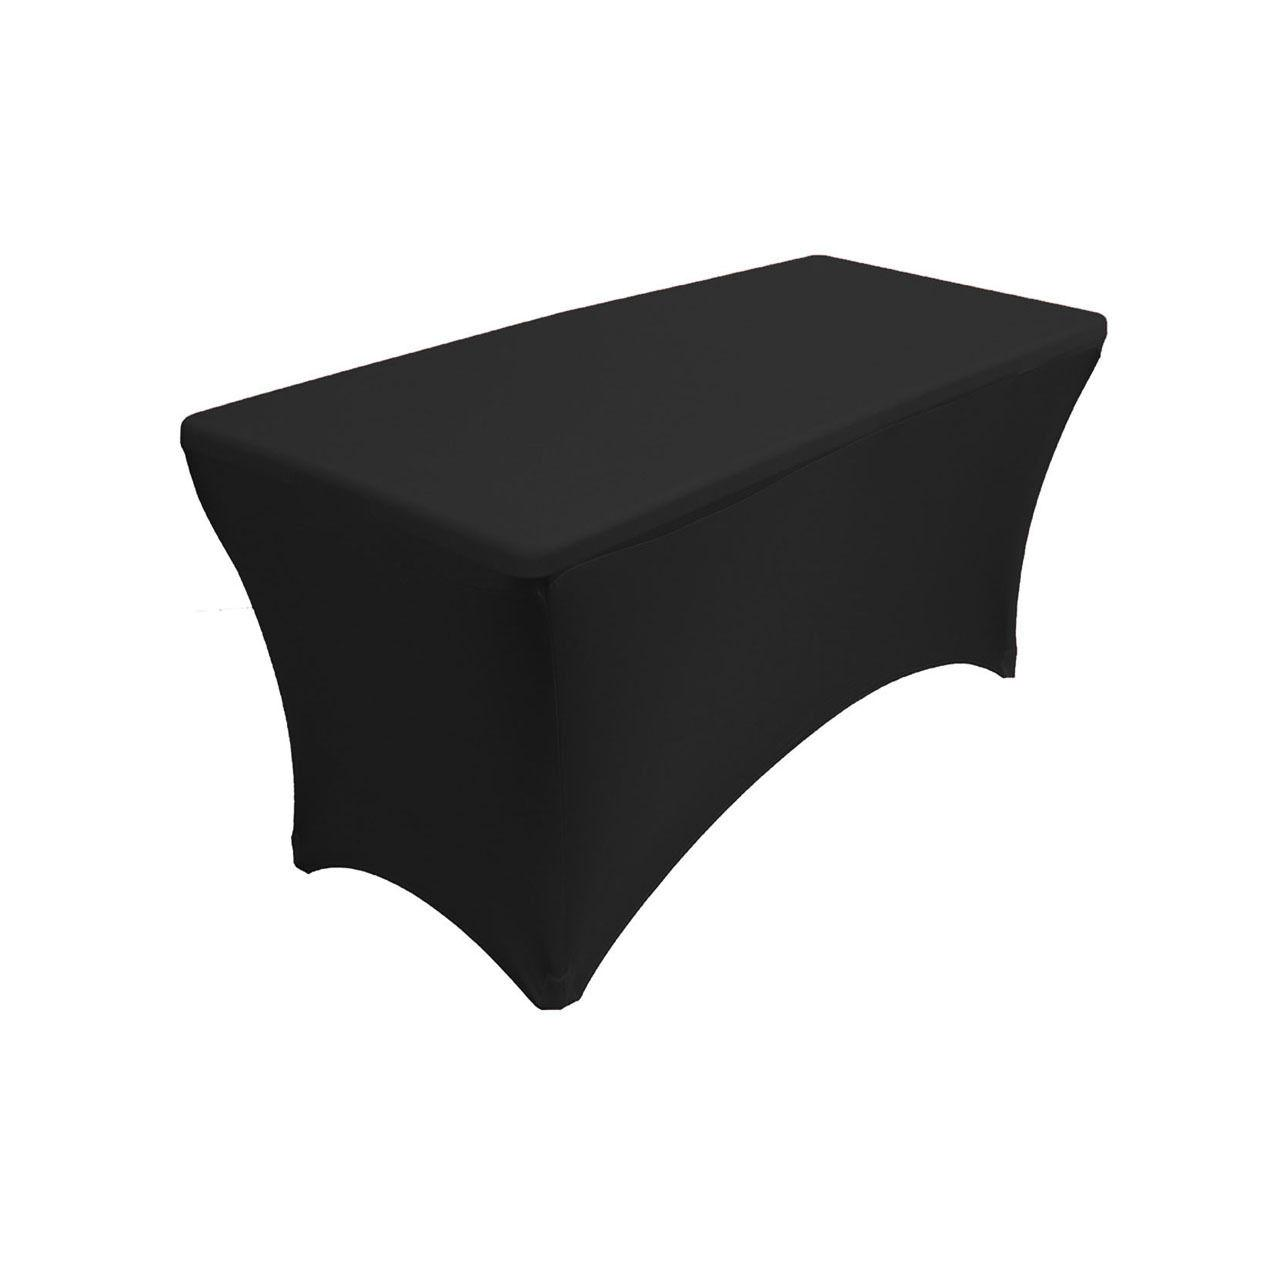 Spandex 4 Ft Rectangular Table Cover Black, Fitted Stretch,S